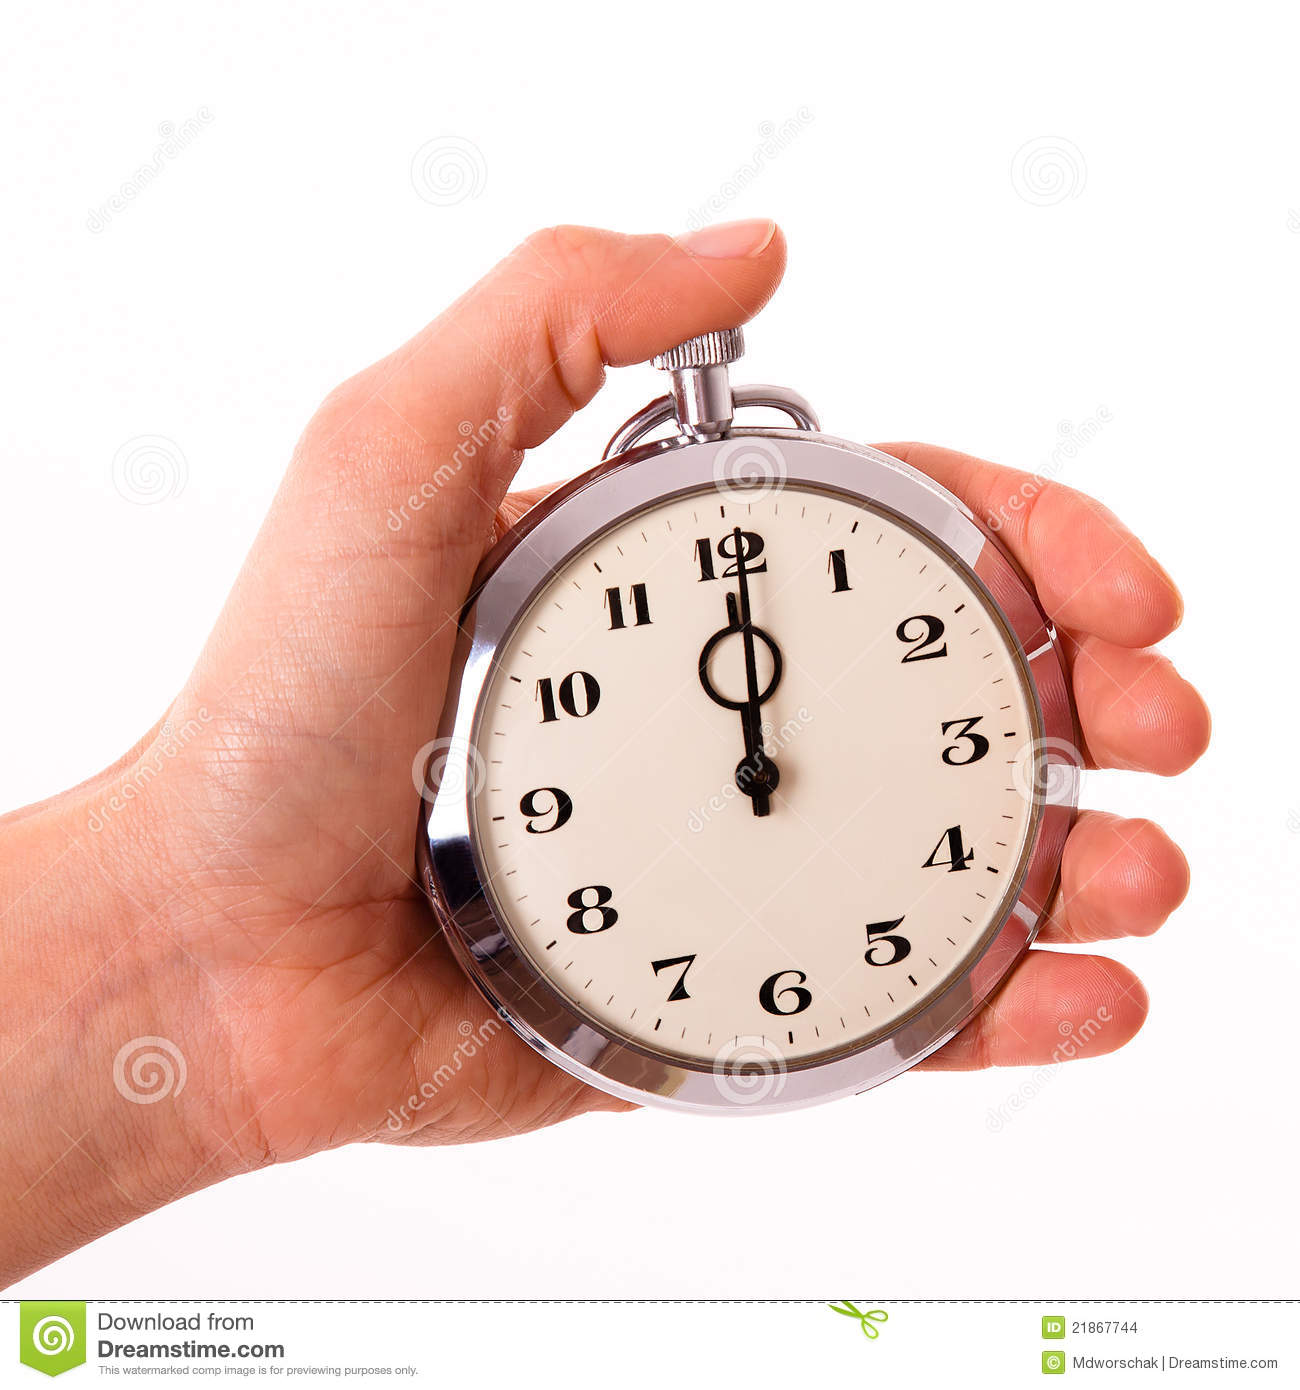 Punctuality Stock Images - Image: 21867744